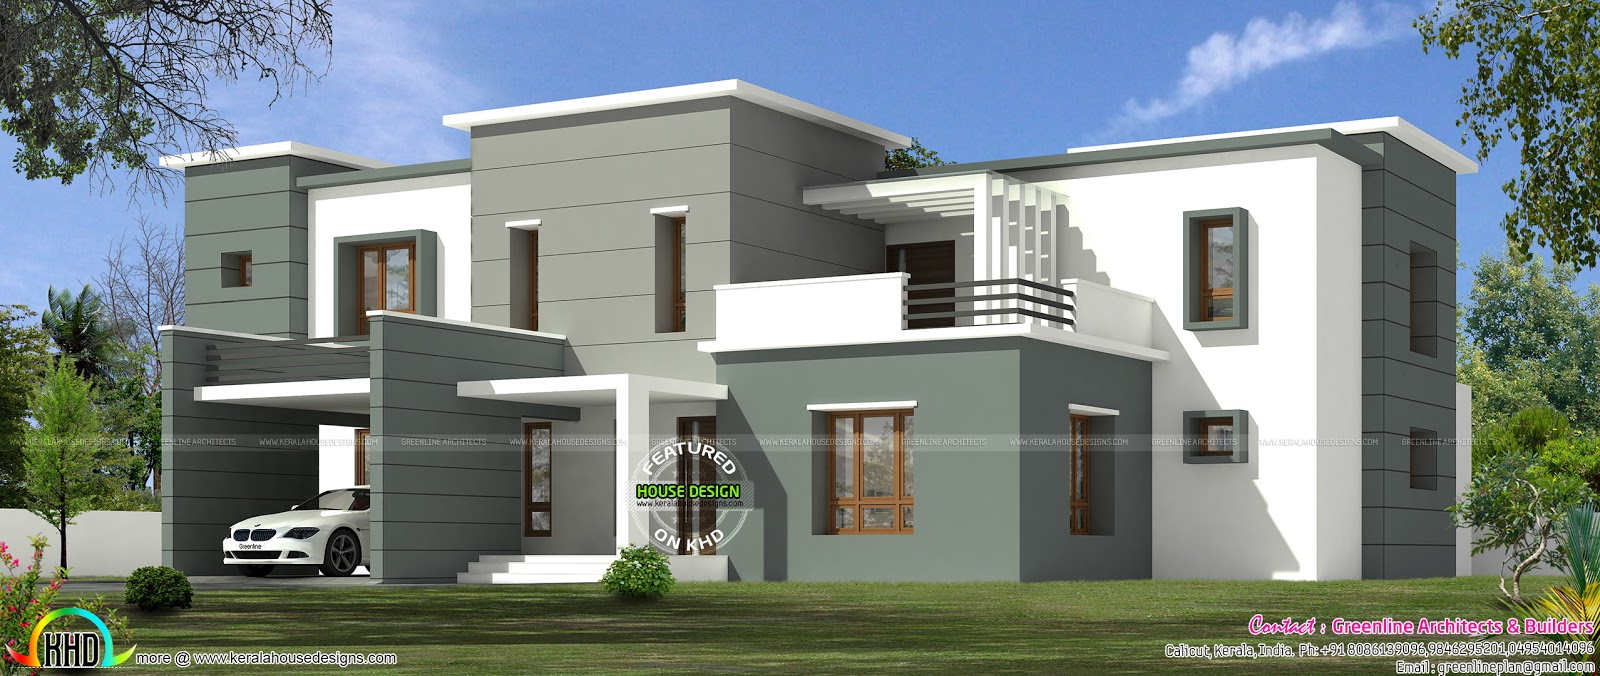 Modern Box Style House Plans - Image of Local Worship